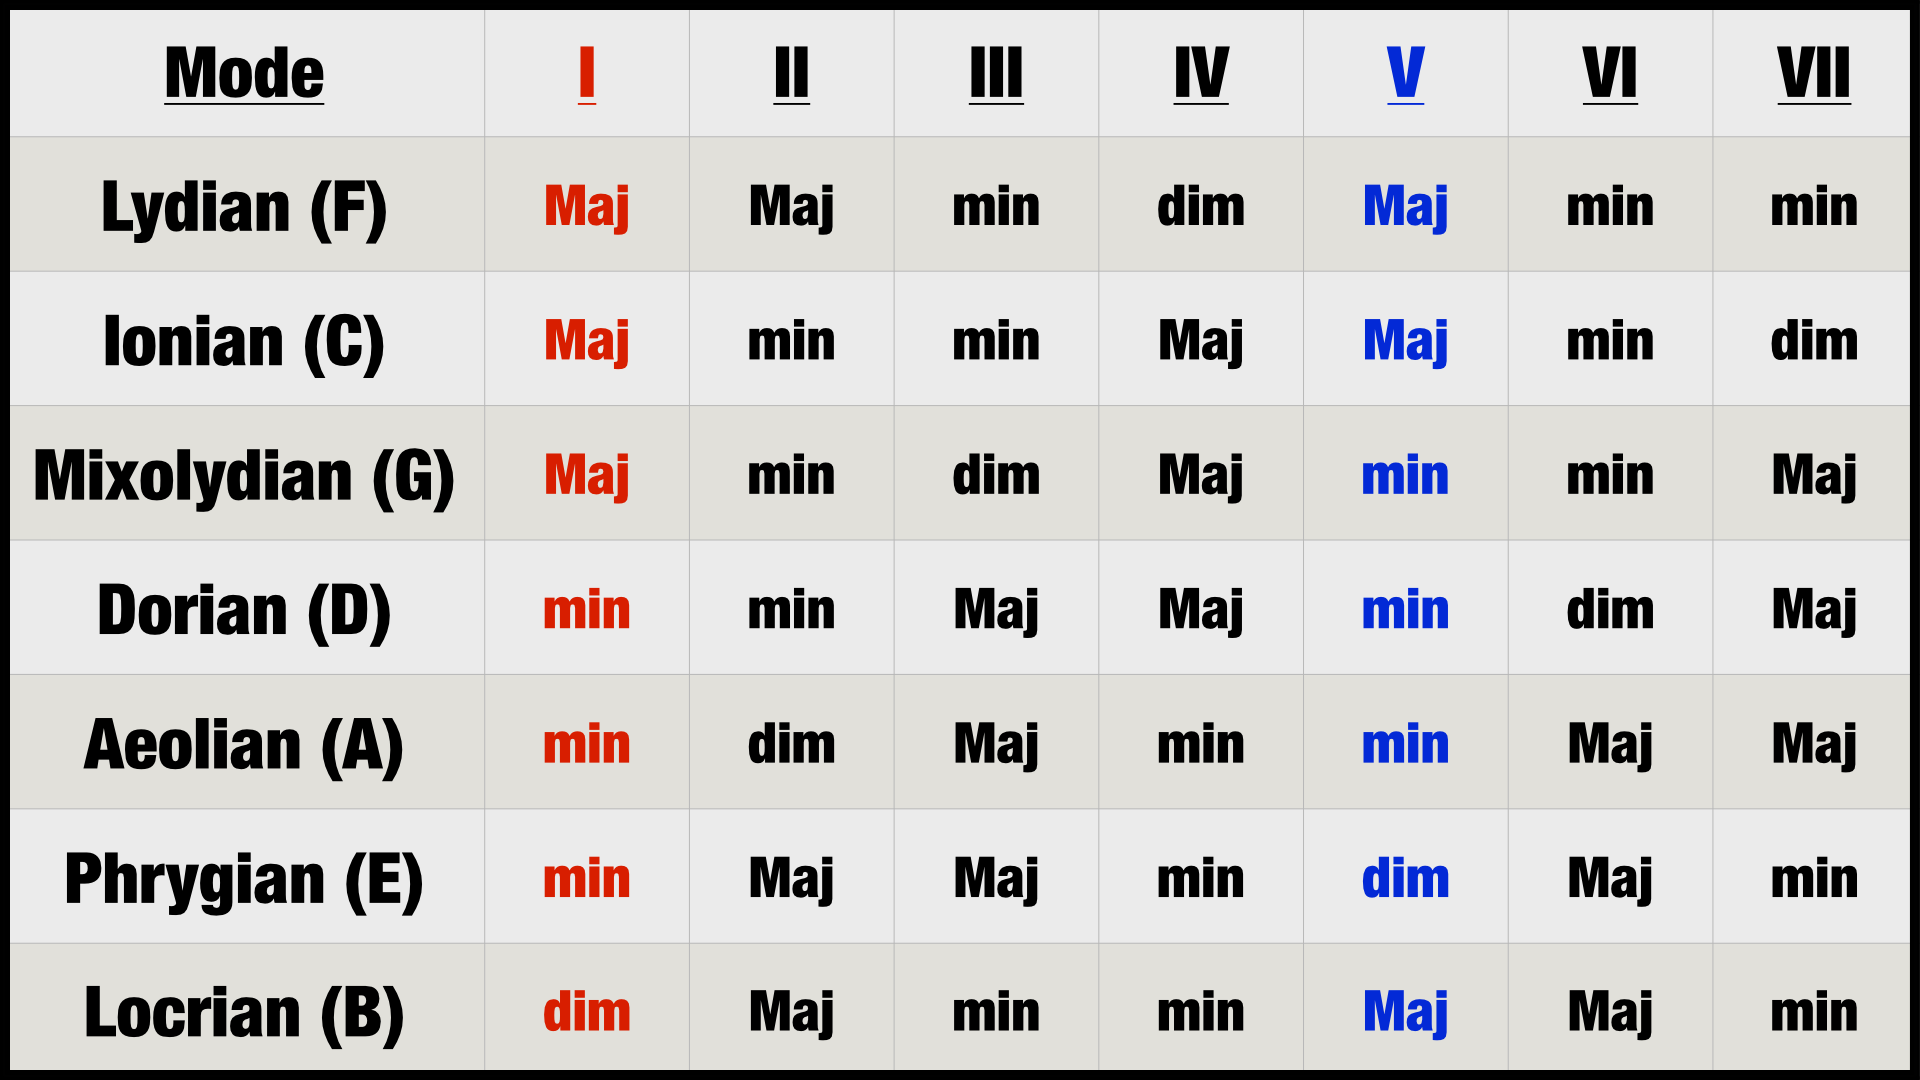 Chord Chart for All 7 Modes (Basic Chords)